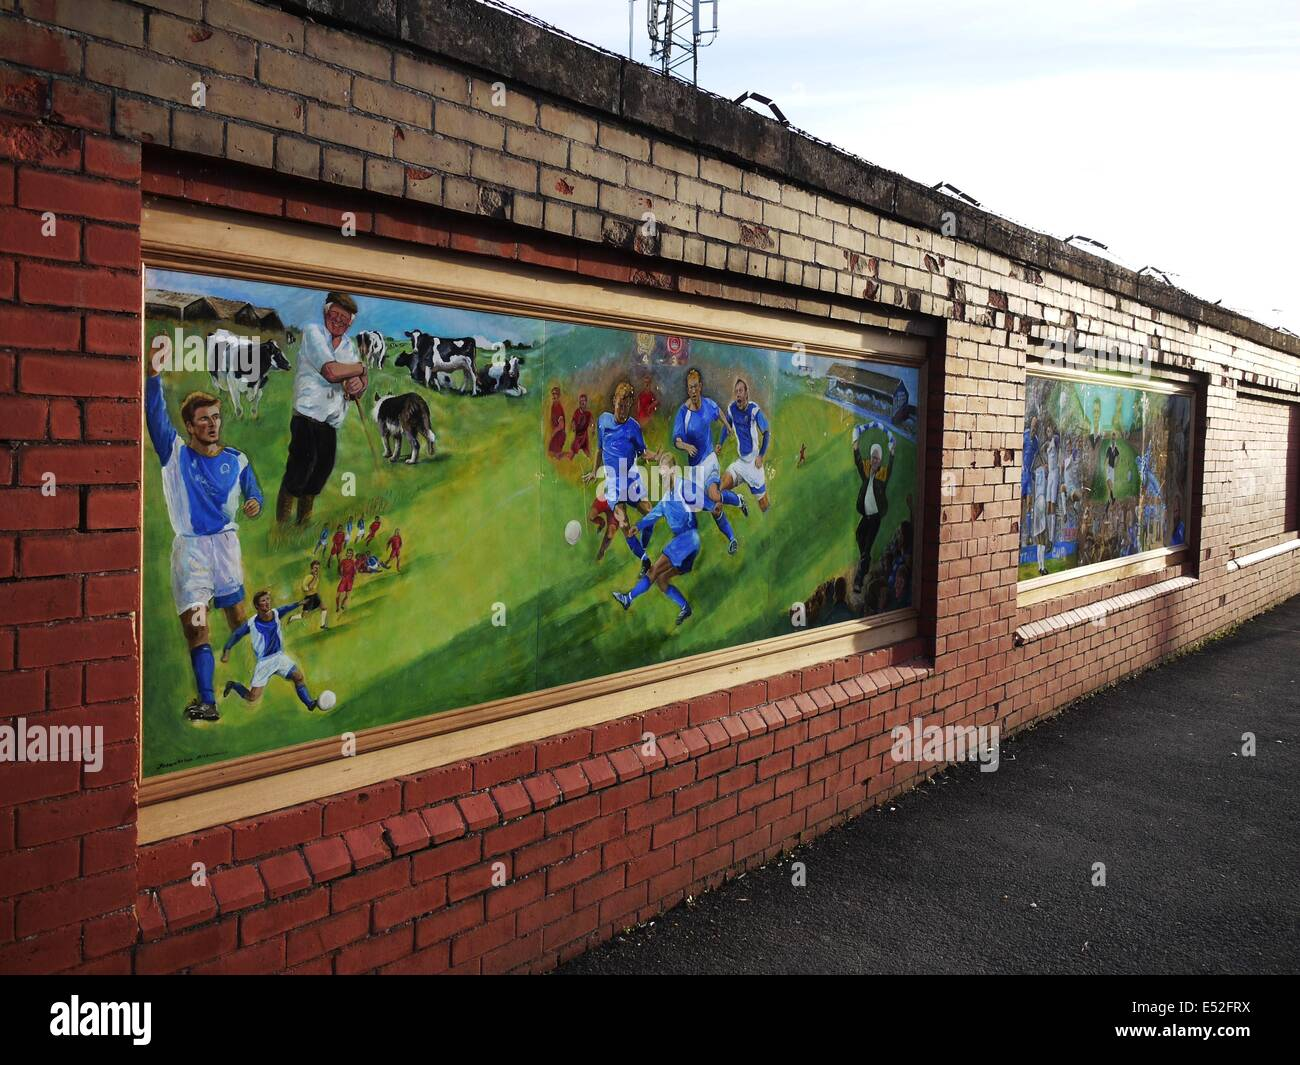 Wall murals at palmerston park dumfries home of queen of the wall murals at palmerston park dumfries home of queen of the south football club on terregles street dumfries amipublicfo Images